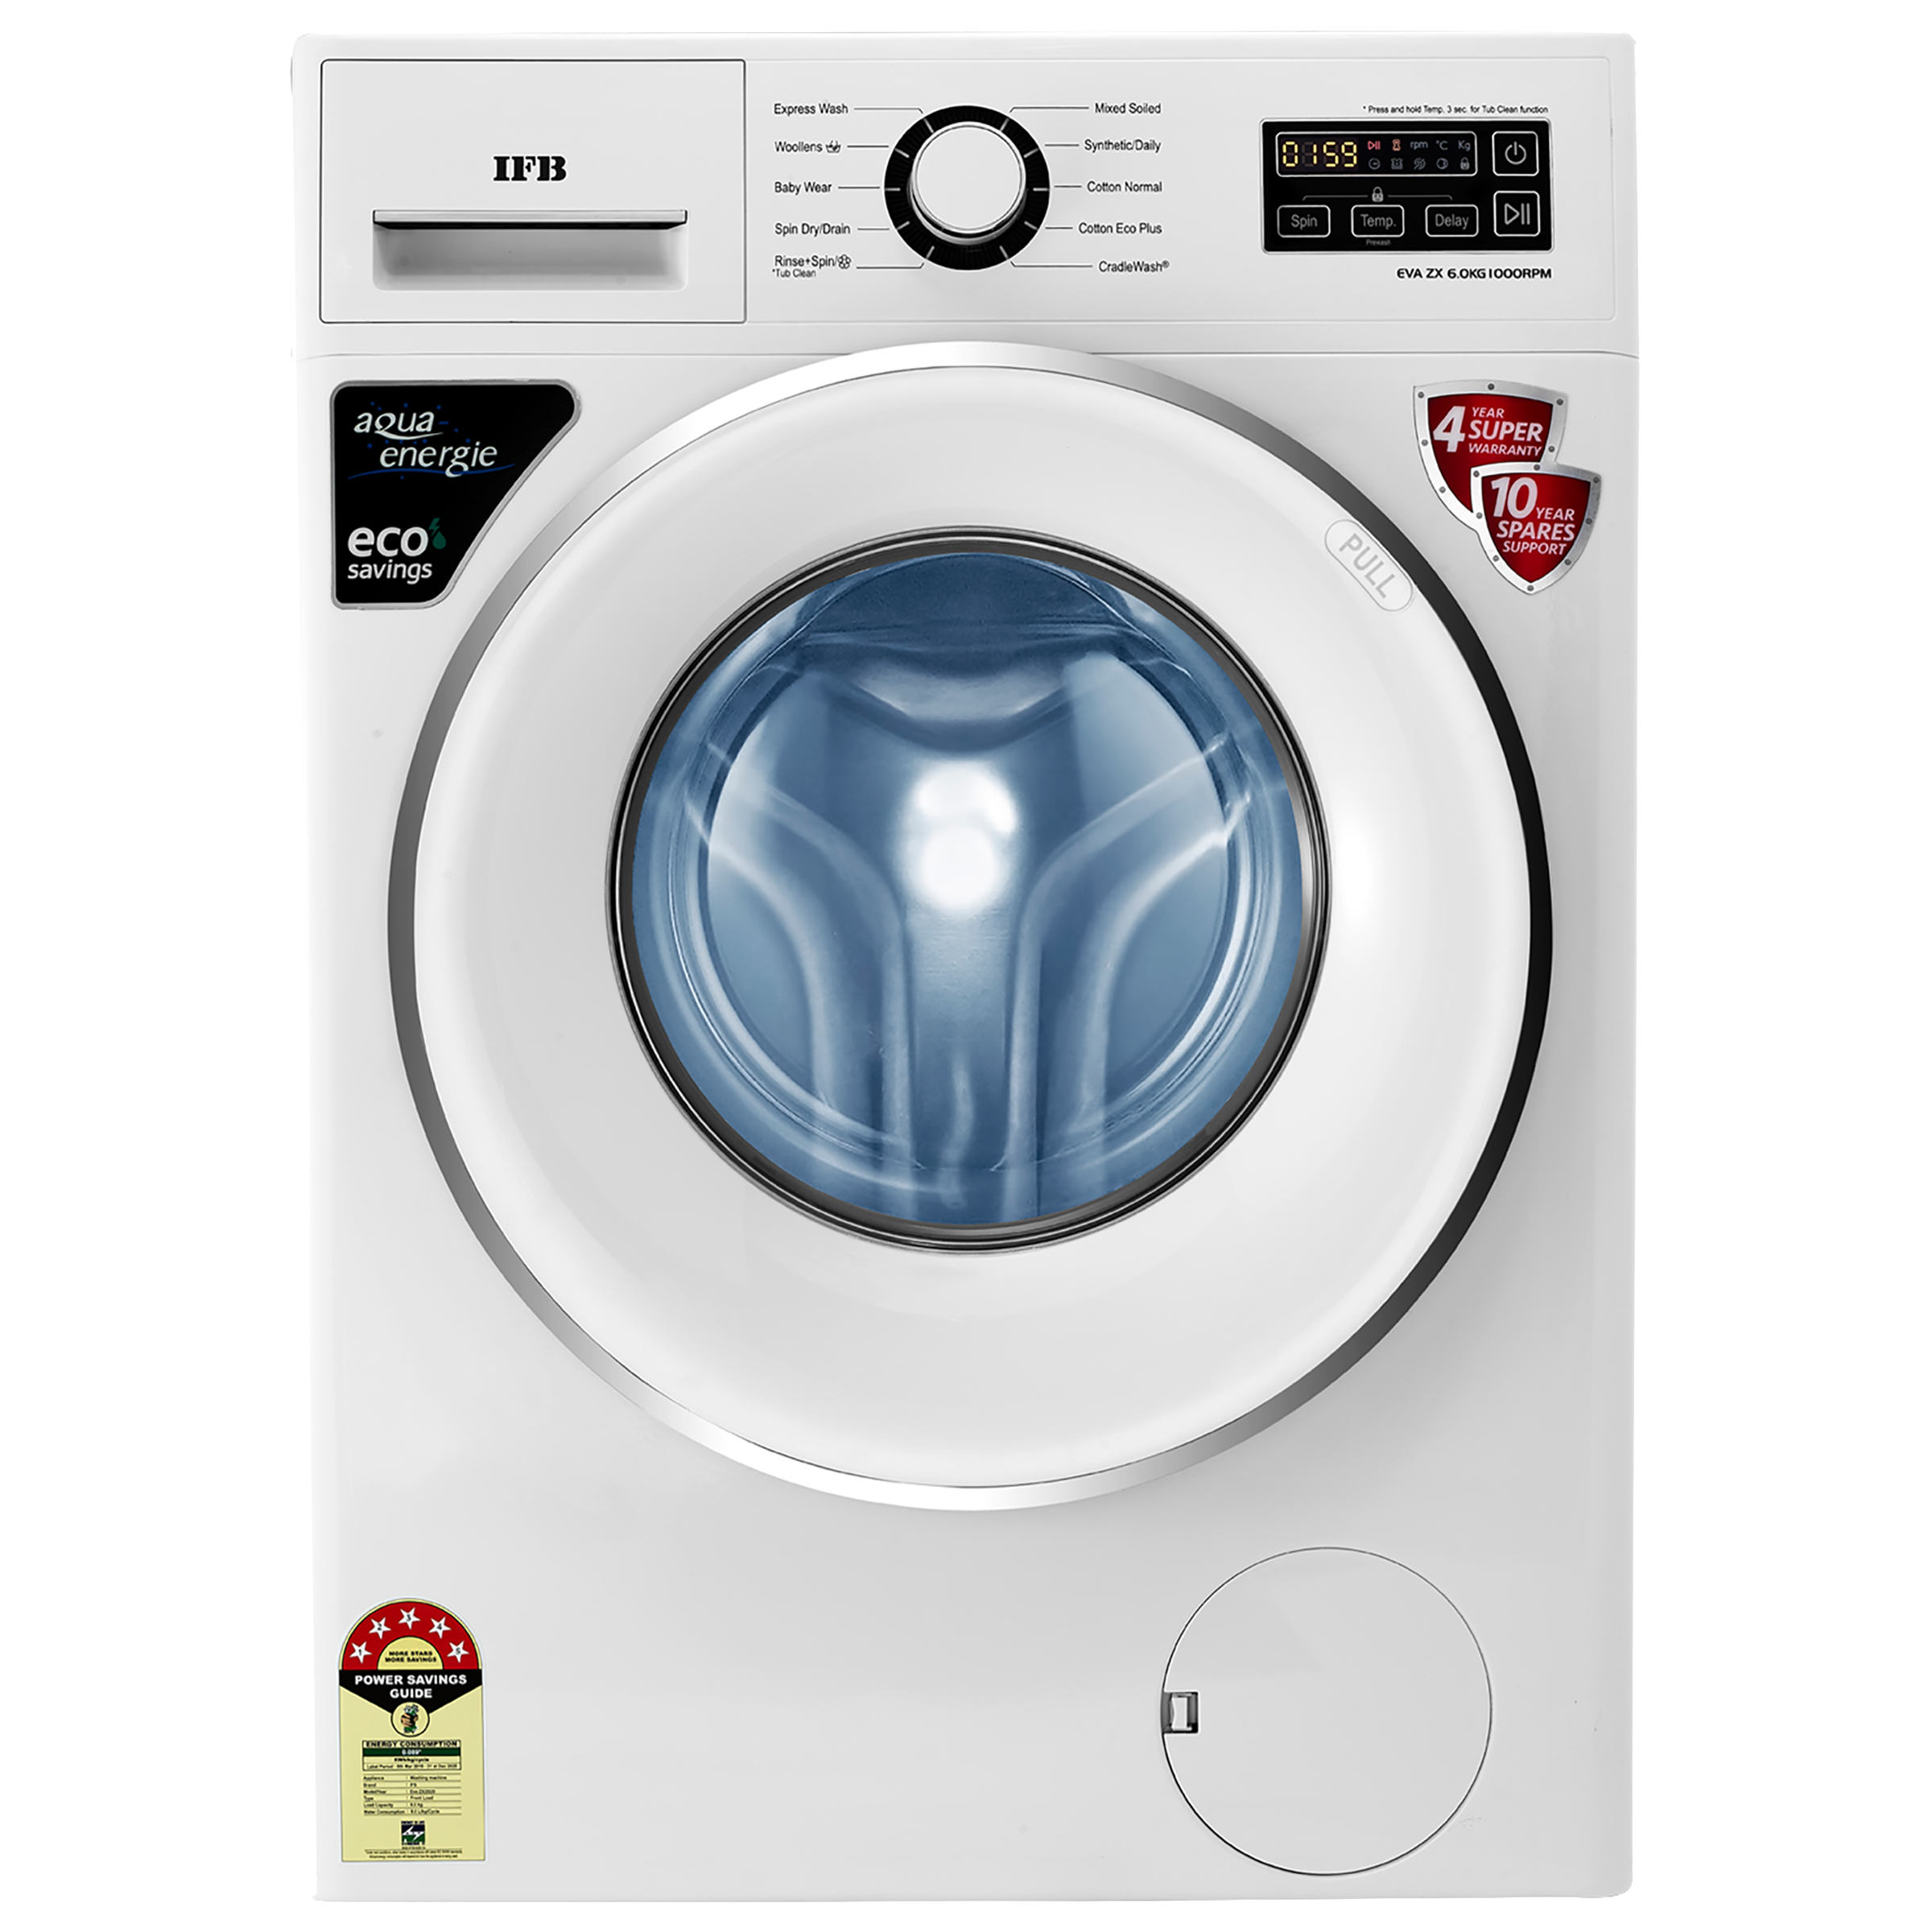 IFB Eva ZX 6 Kg 5 Star Fully Automatic Front Load Washing Machine (Inbuilt Heater, Self-Diagnosis, White)_1